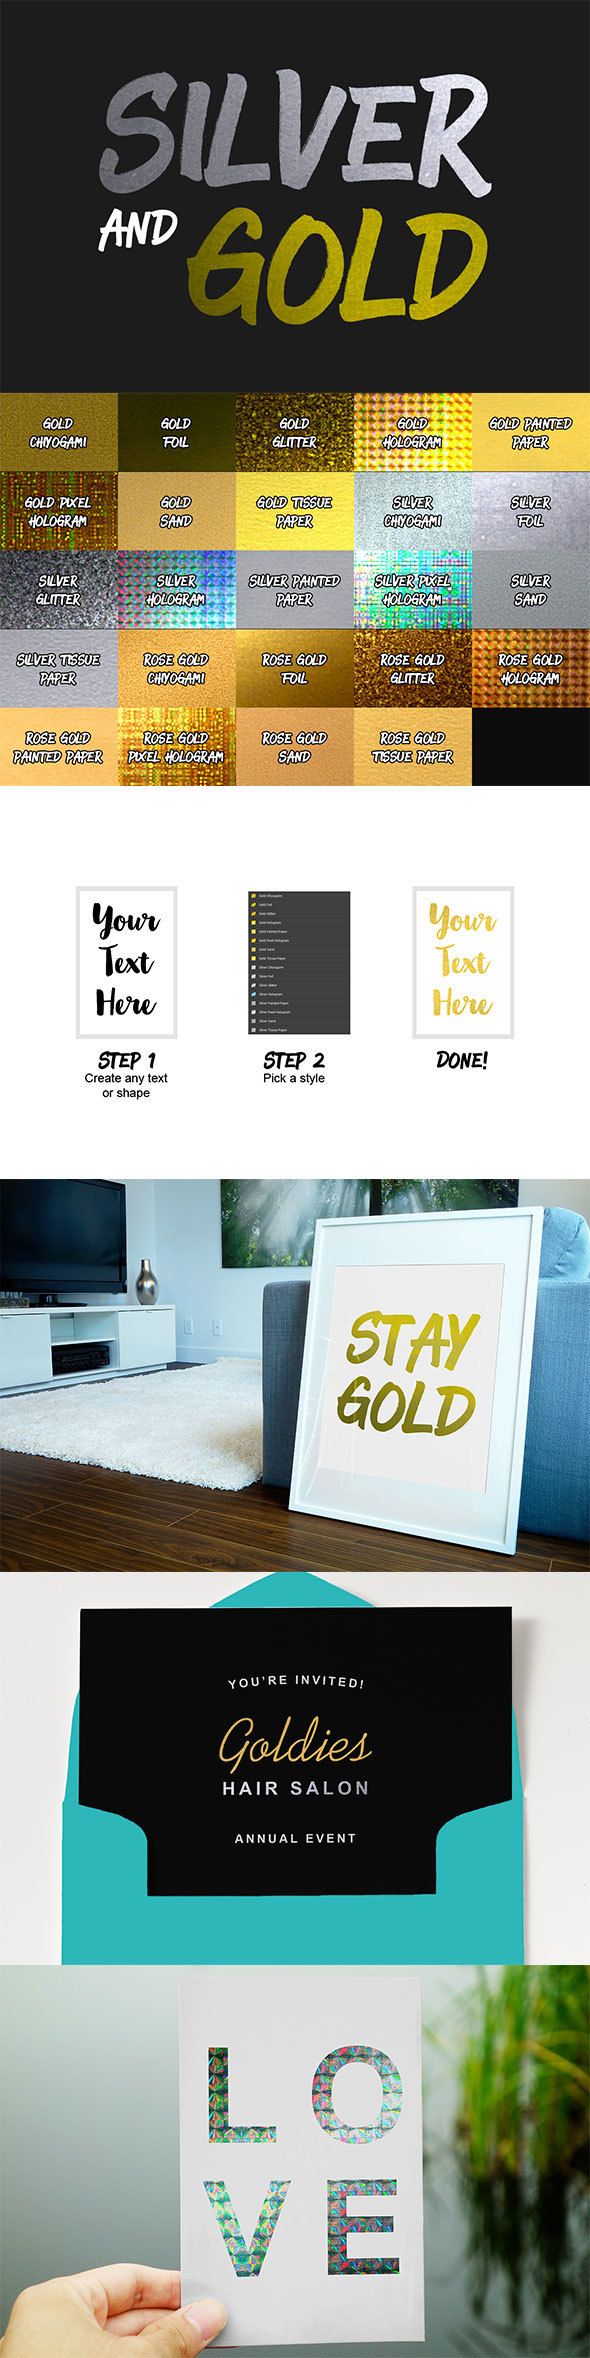 24 Silver and Gold Styles - Styles Photoshop